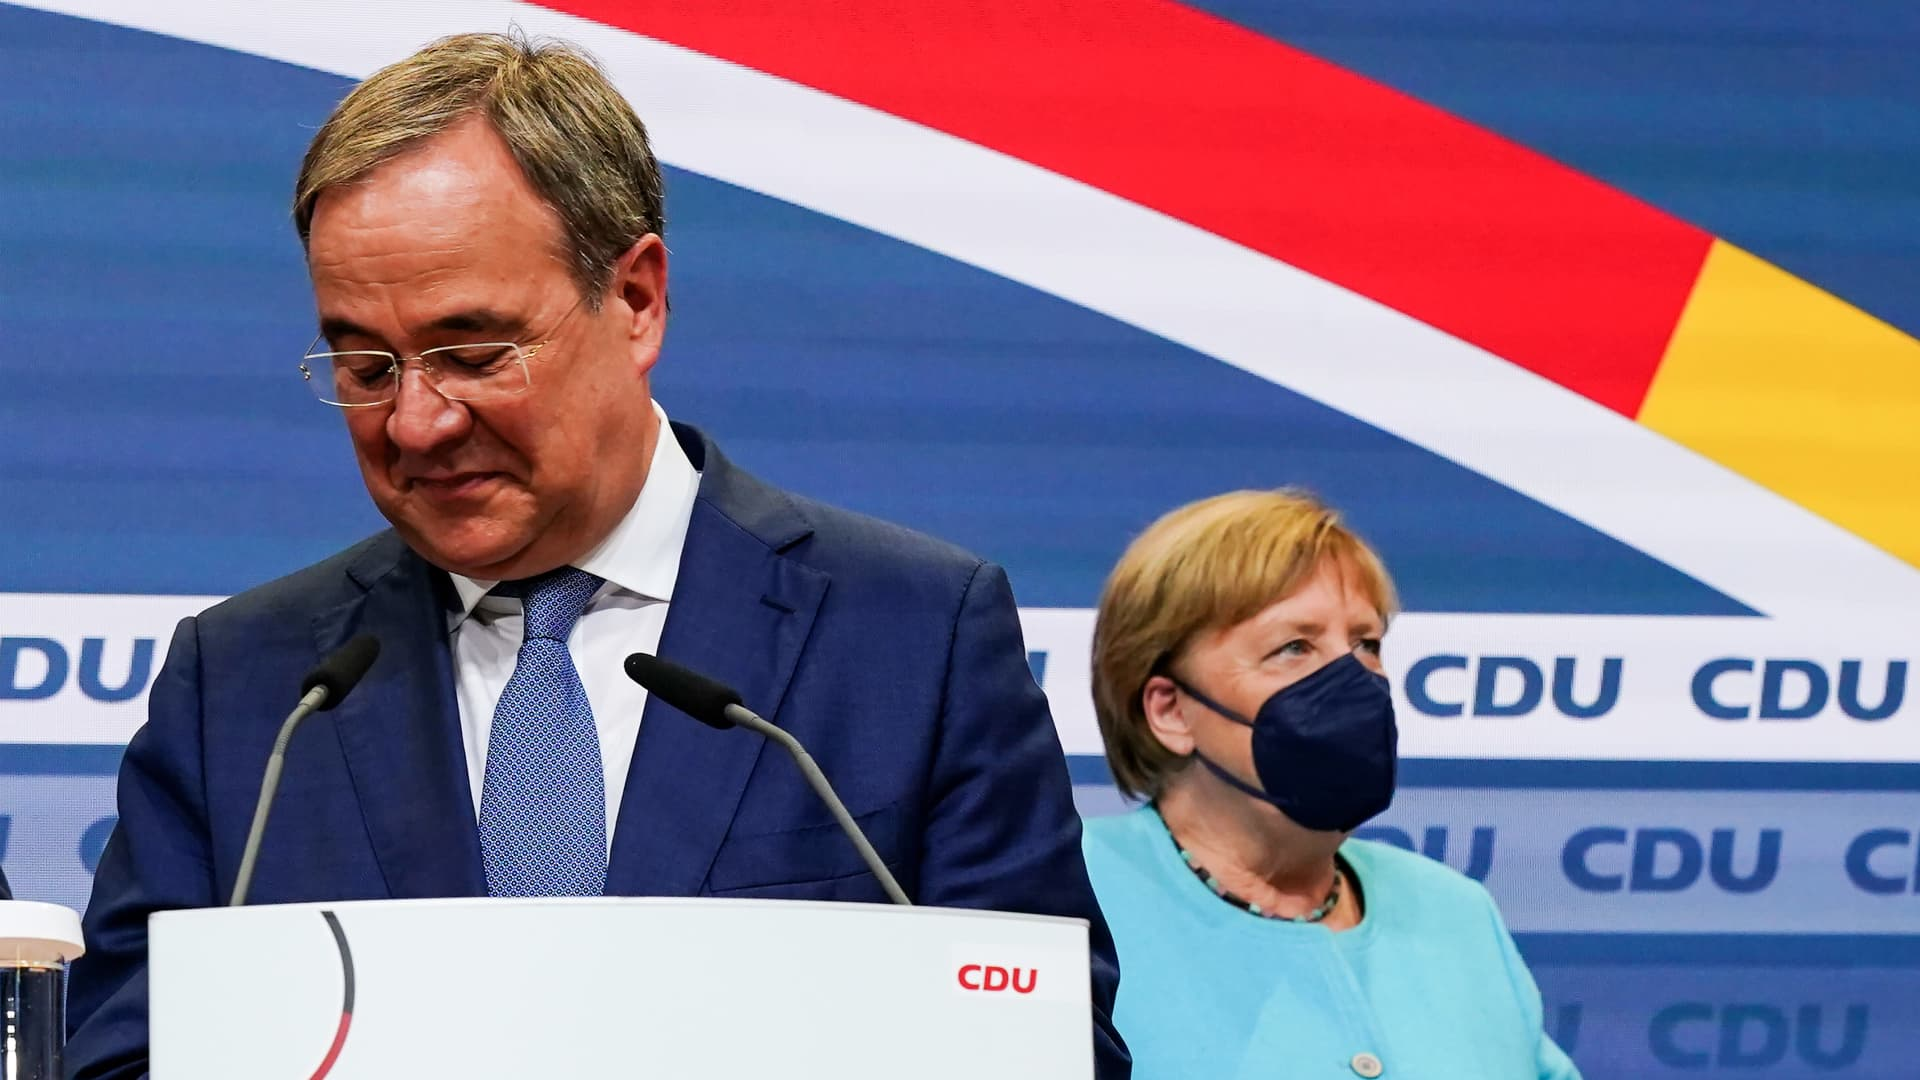 Christian Democratic Union (CDU) party chairman and candidate for the federal elections, Armin Laschet, with German Chancellor Angela Merkel, on September 26, 2021 in Berlin, Germany.